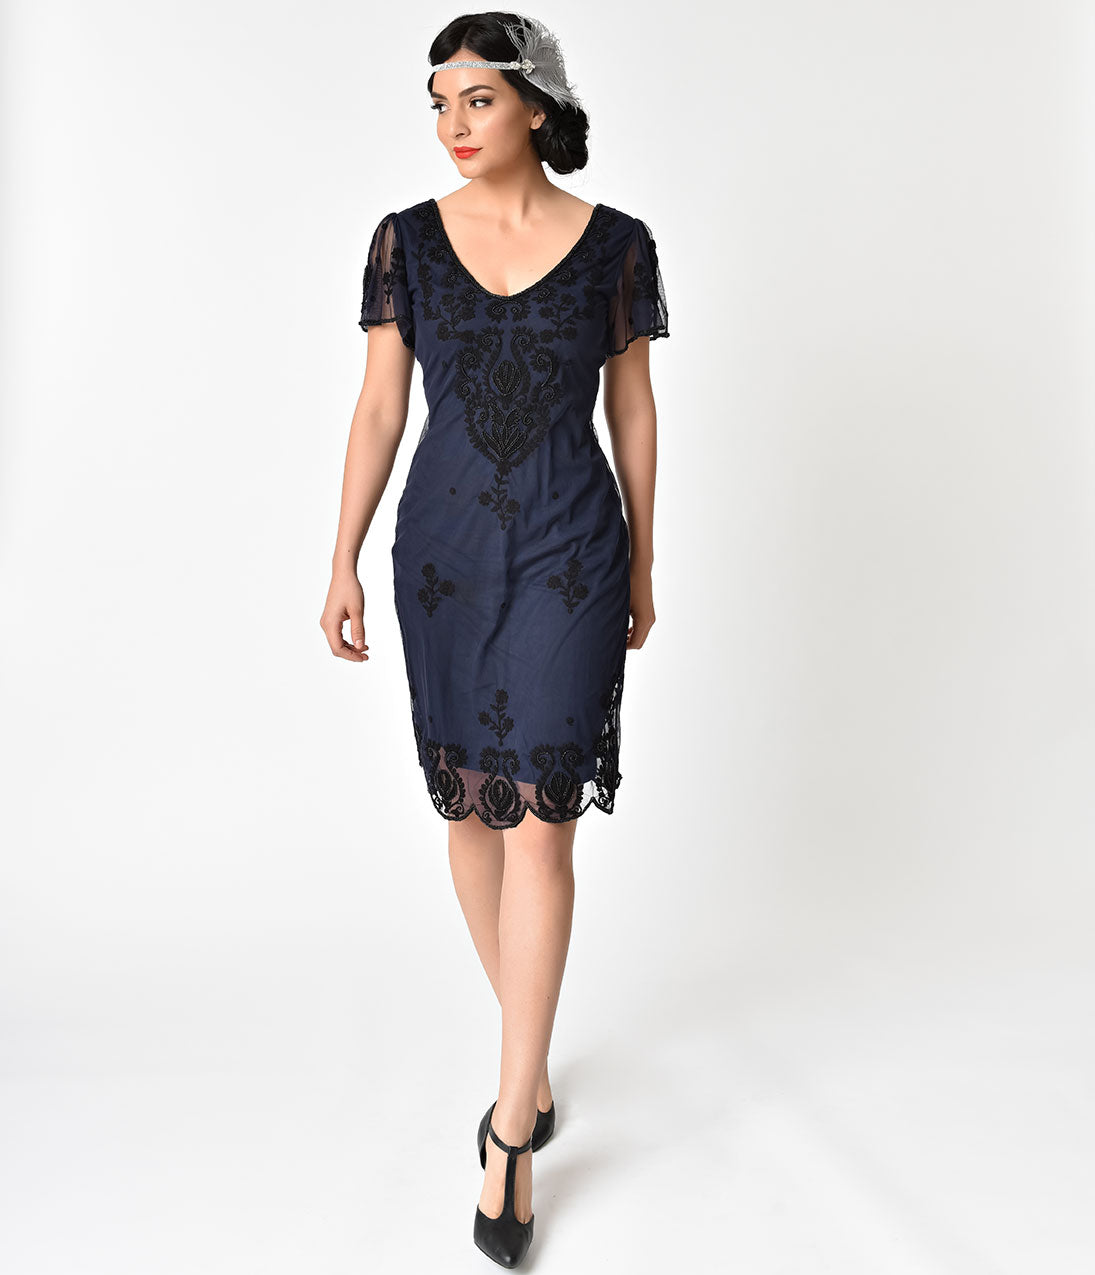 1920s Style Dresses, Flapper Dresses Navy Blue  Black Embroidery Lillian Flapper Dress $62.00 AT vintagedancer.com